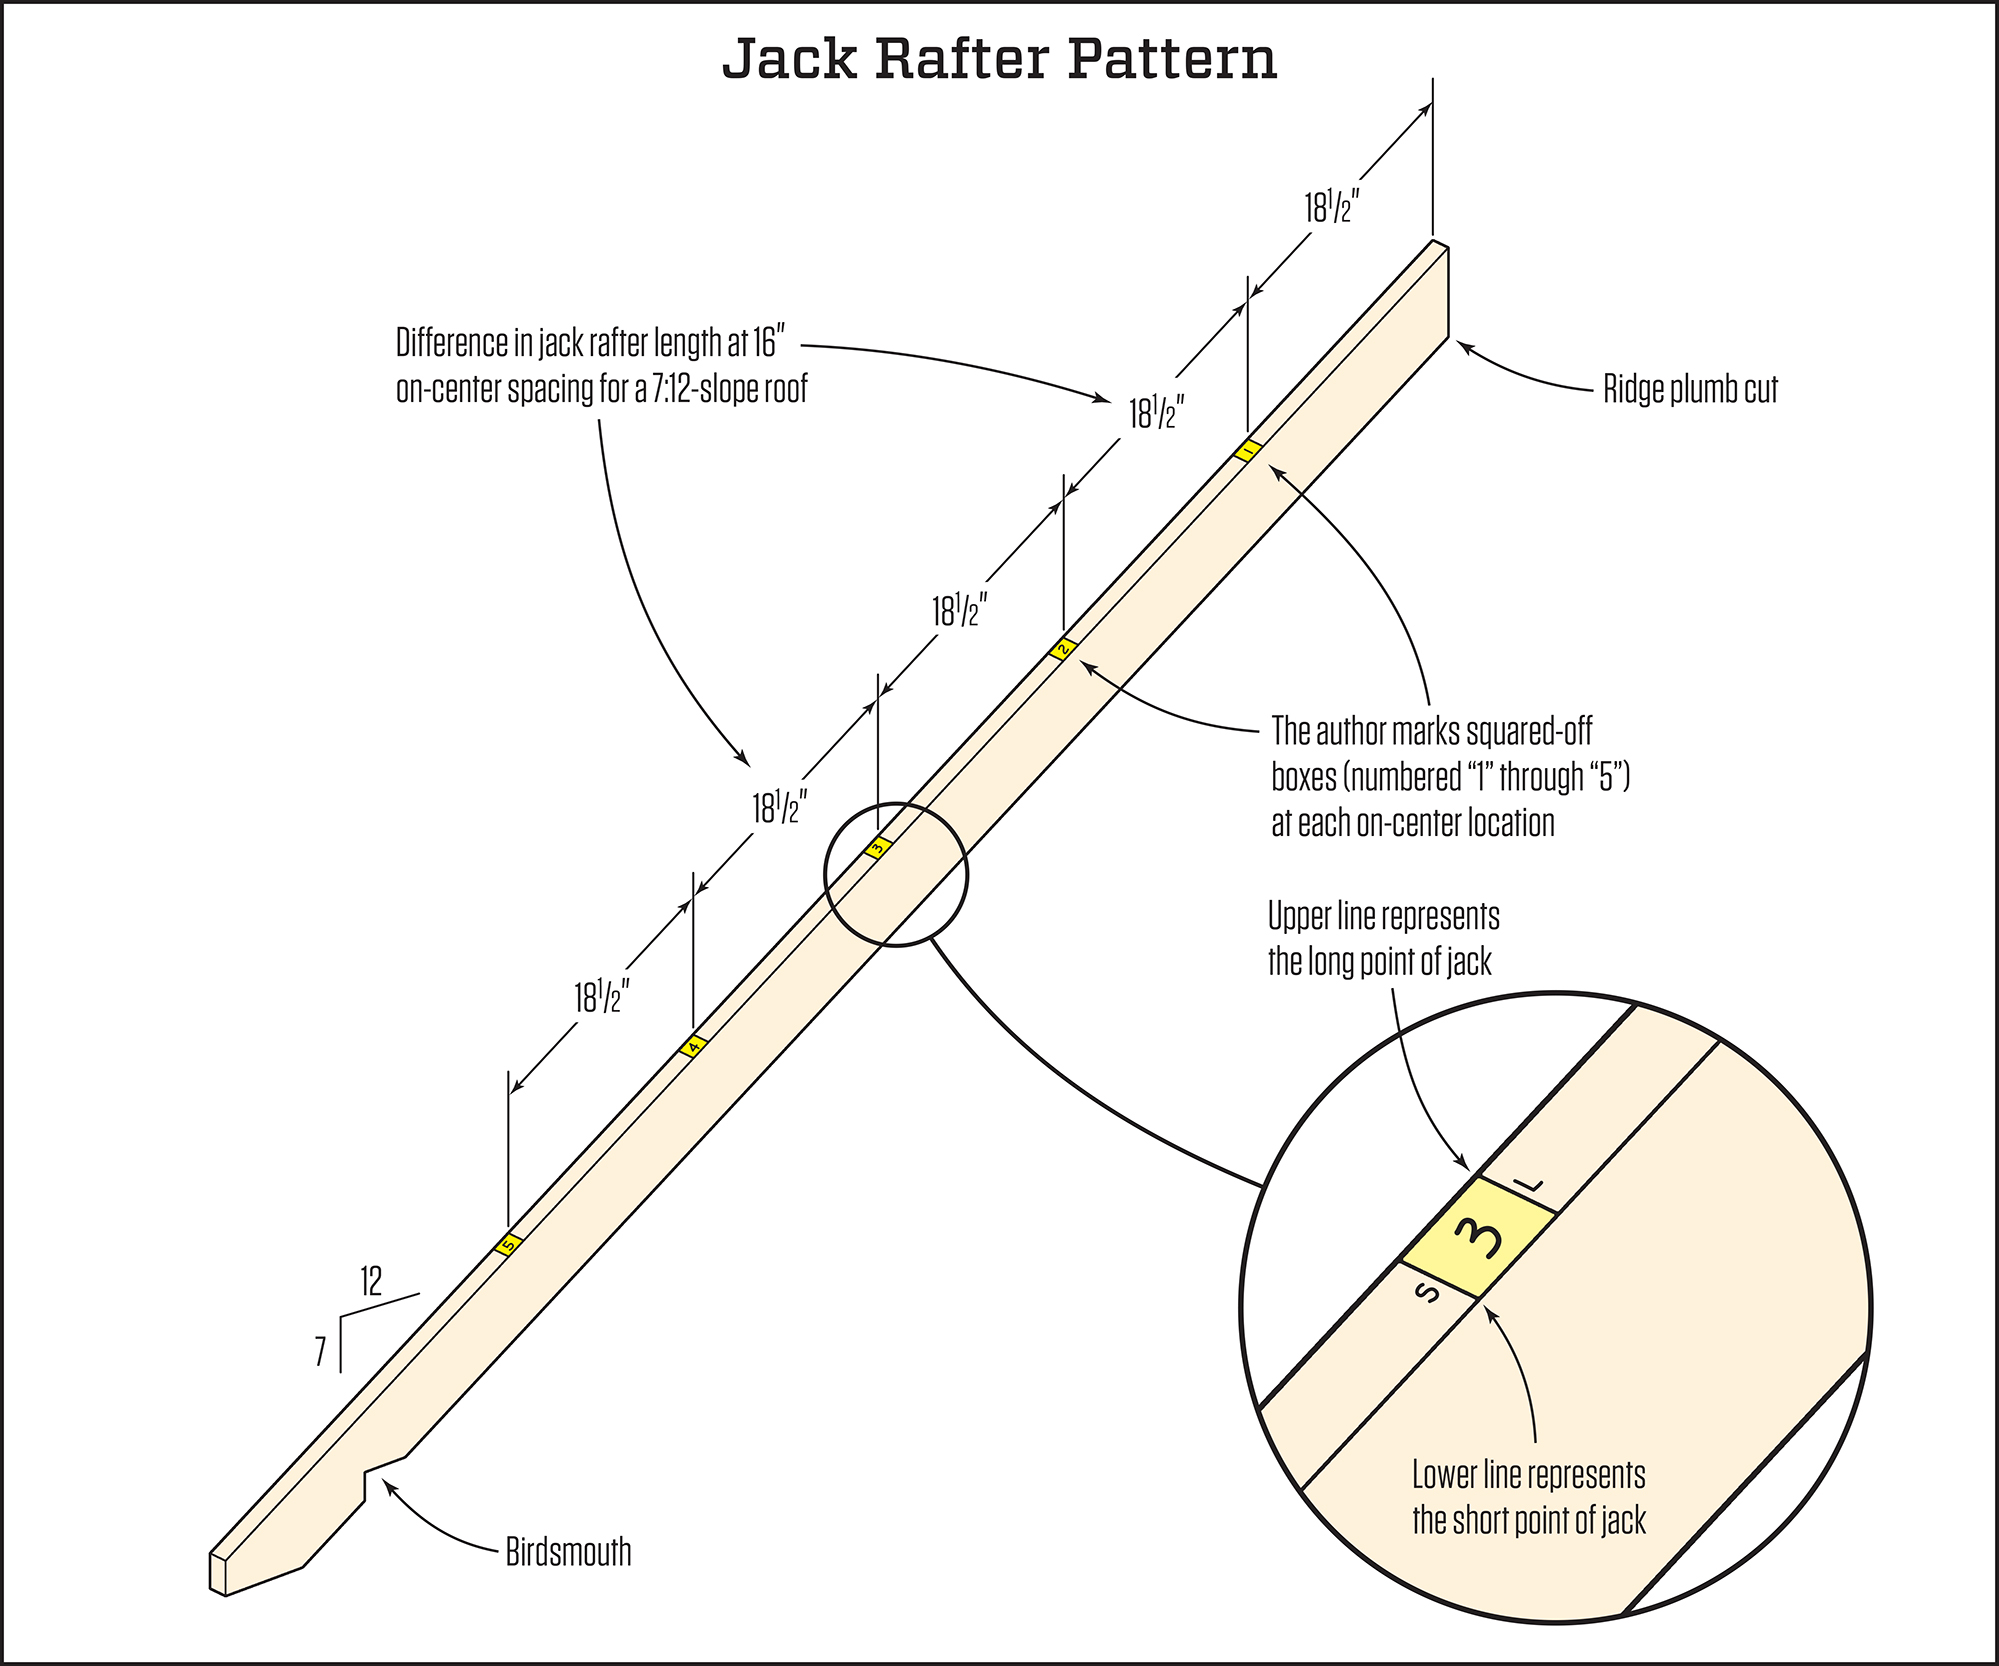 Fast Jack Rafter Layout And Cutting